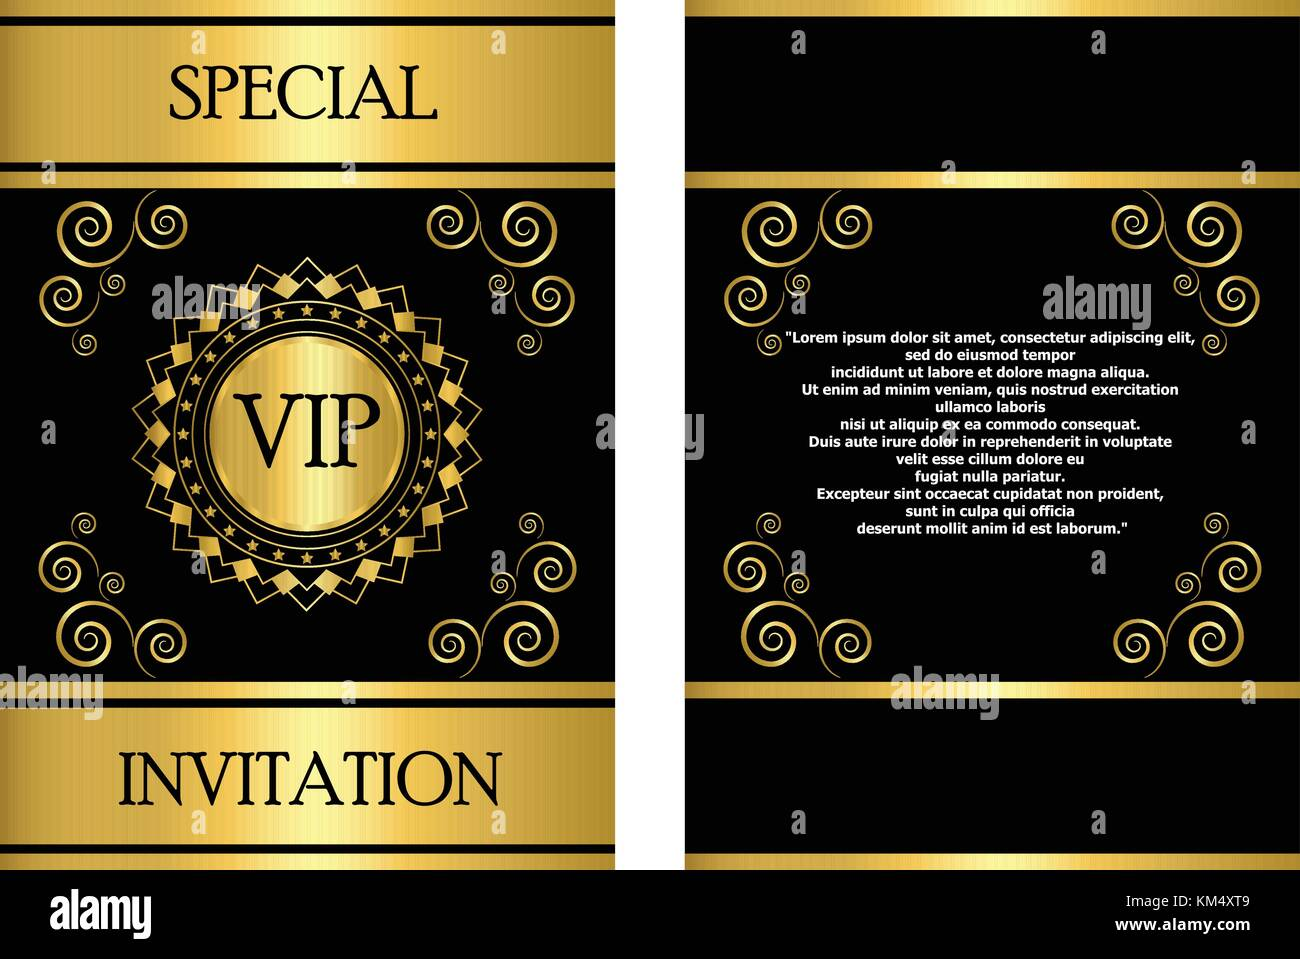 https www alamy com stock image a golden vip invitation card template that can be used for businesscompanyevent 167295305 html